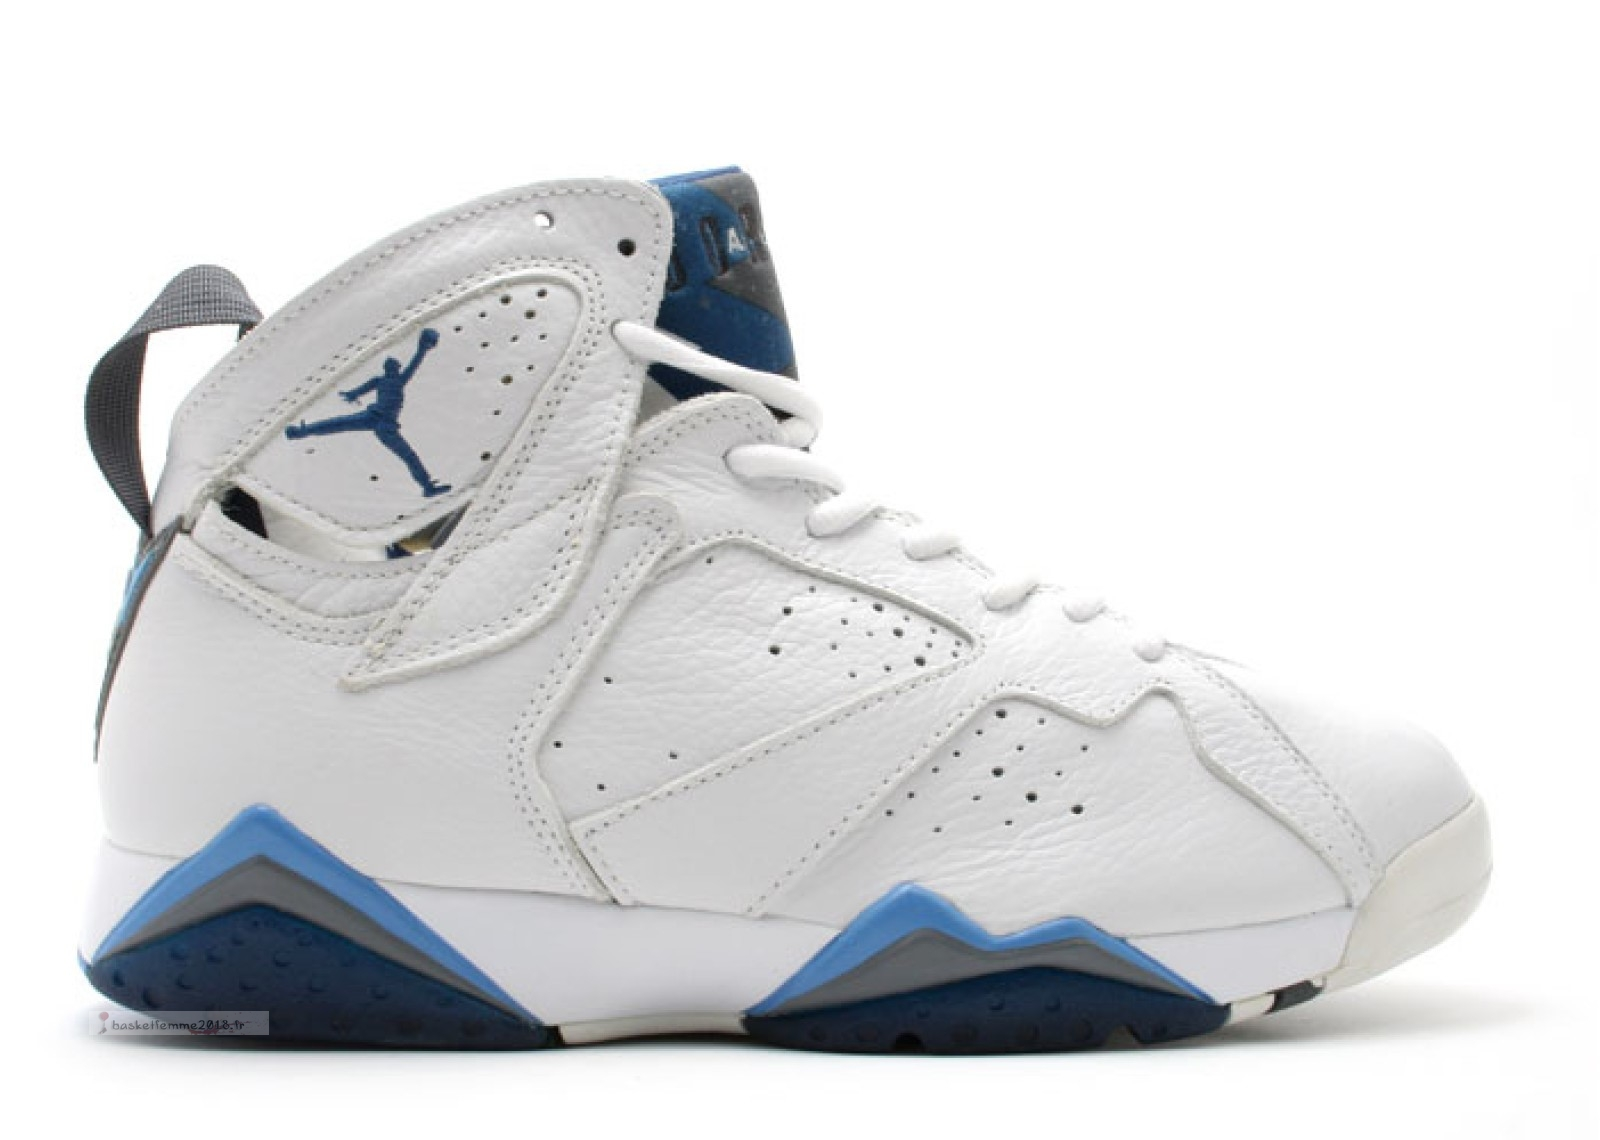 Air Jordan 7 Retro Blanc (304775-141) Chaussure de Basket